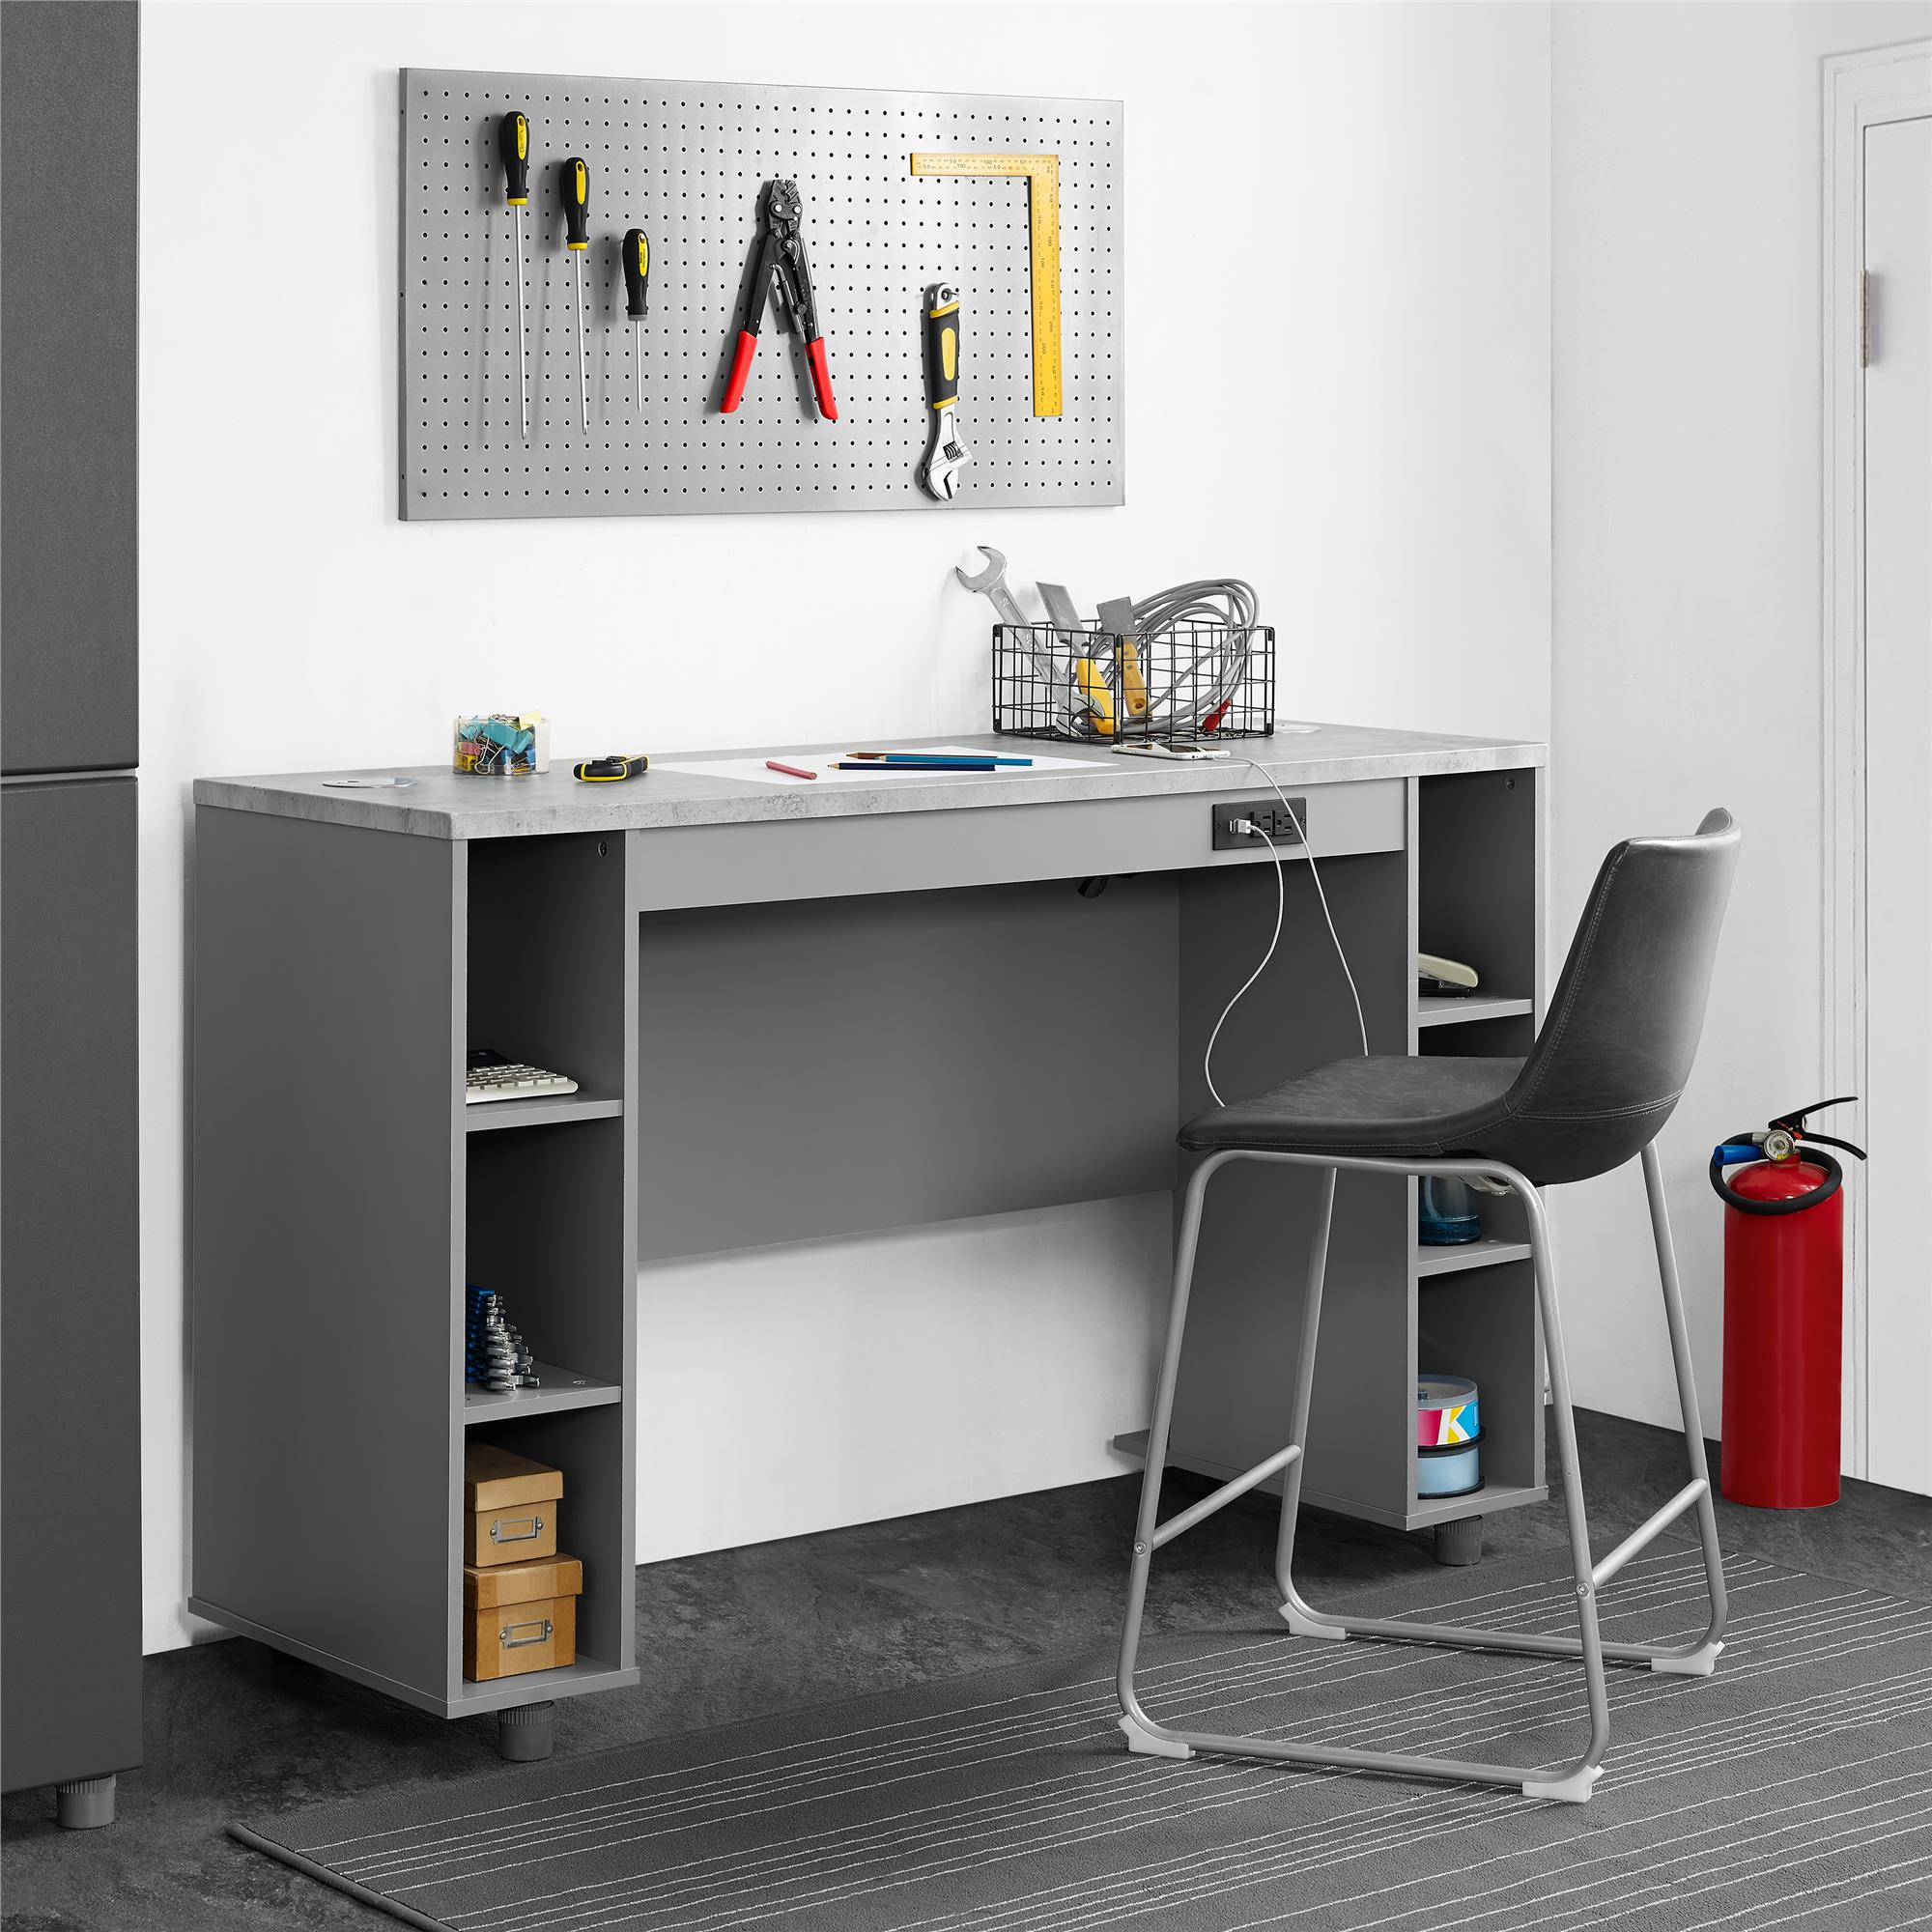 SystemBuild Latitude Work Bench, Gray/Concrete